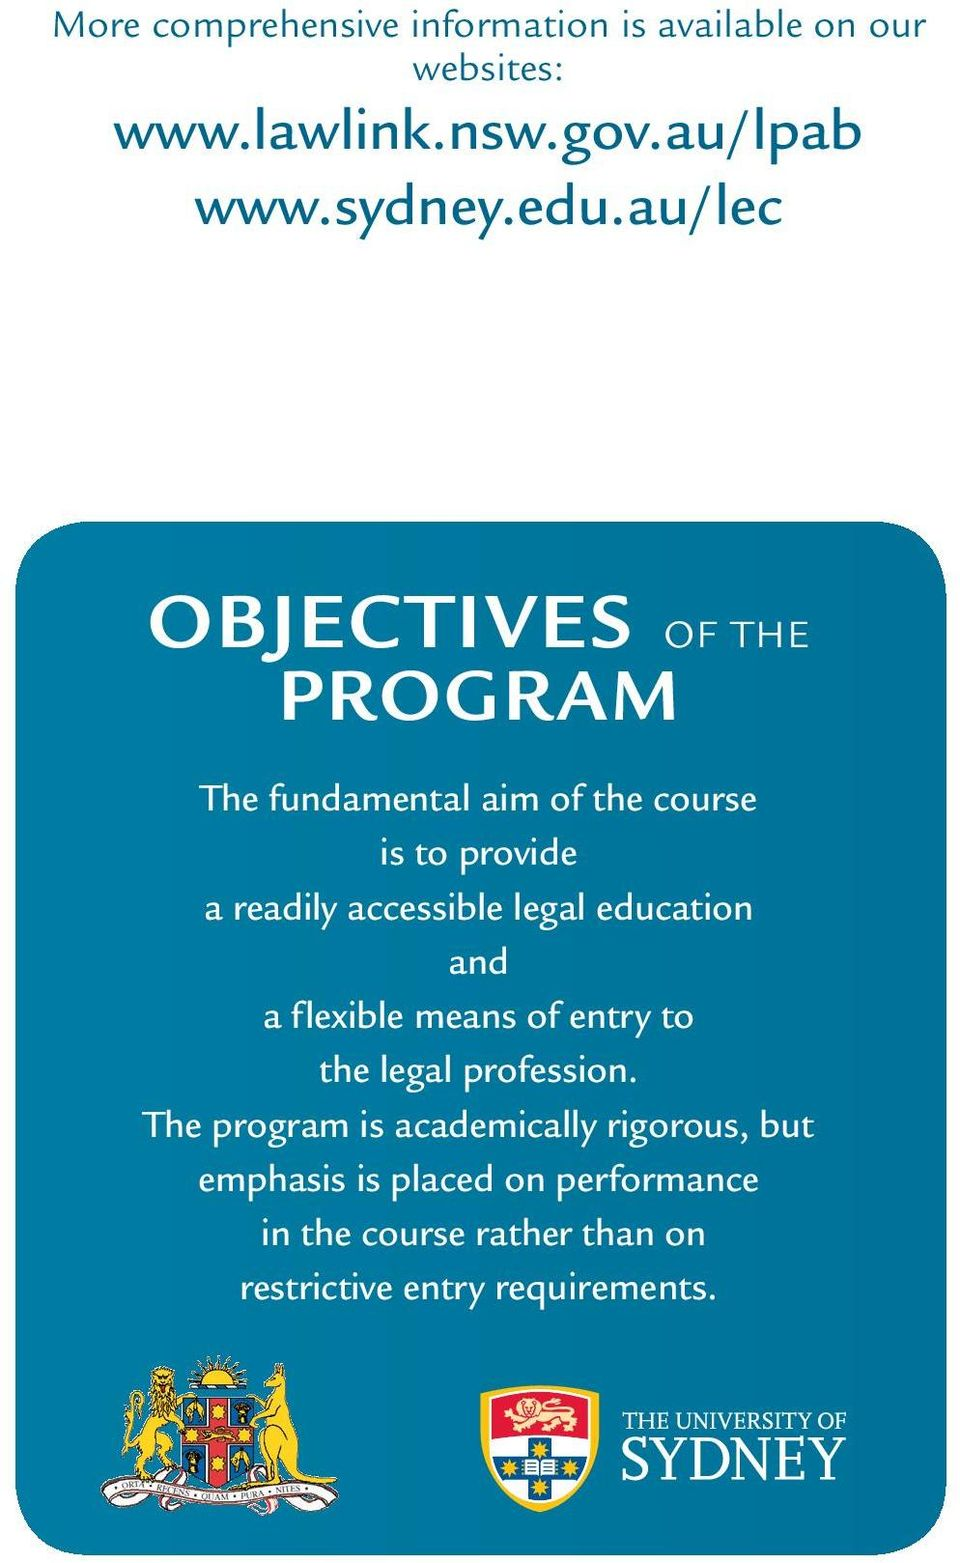 legal education and a flexible means of entry to the legal profession.